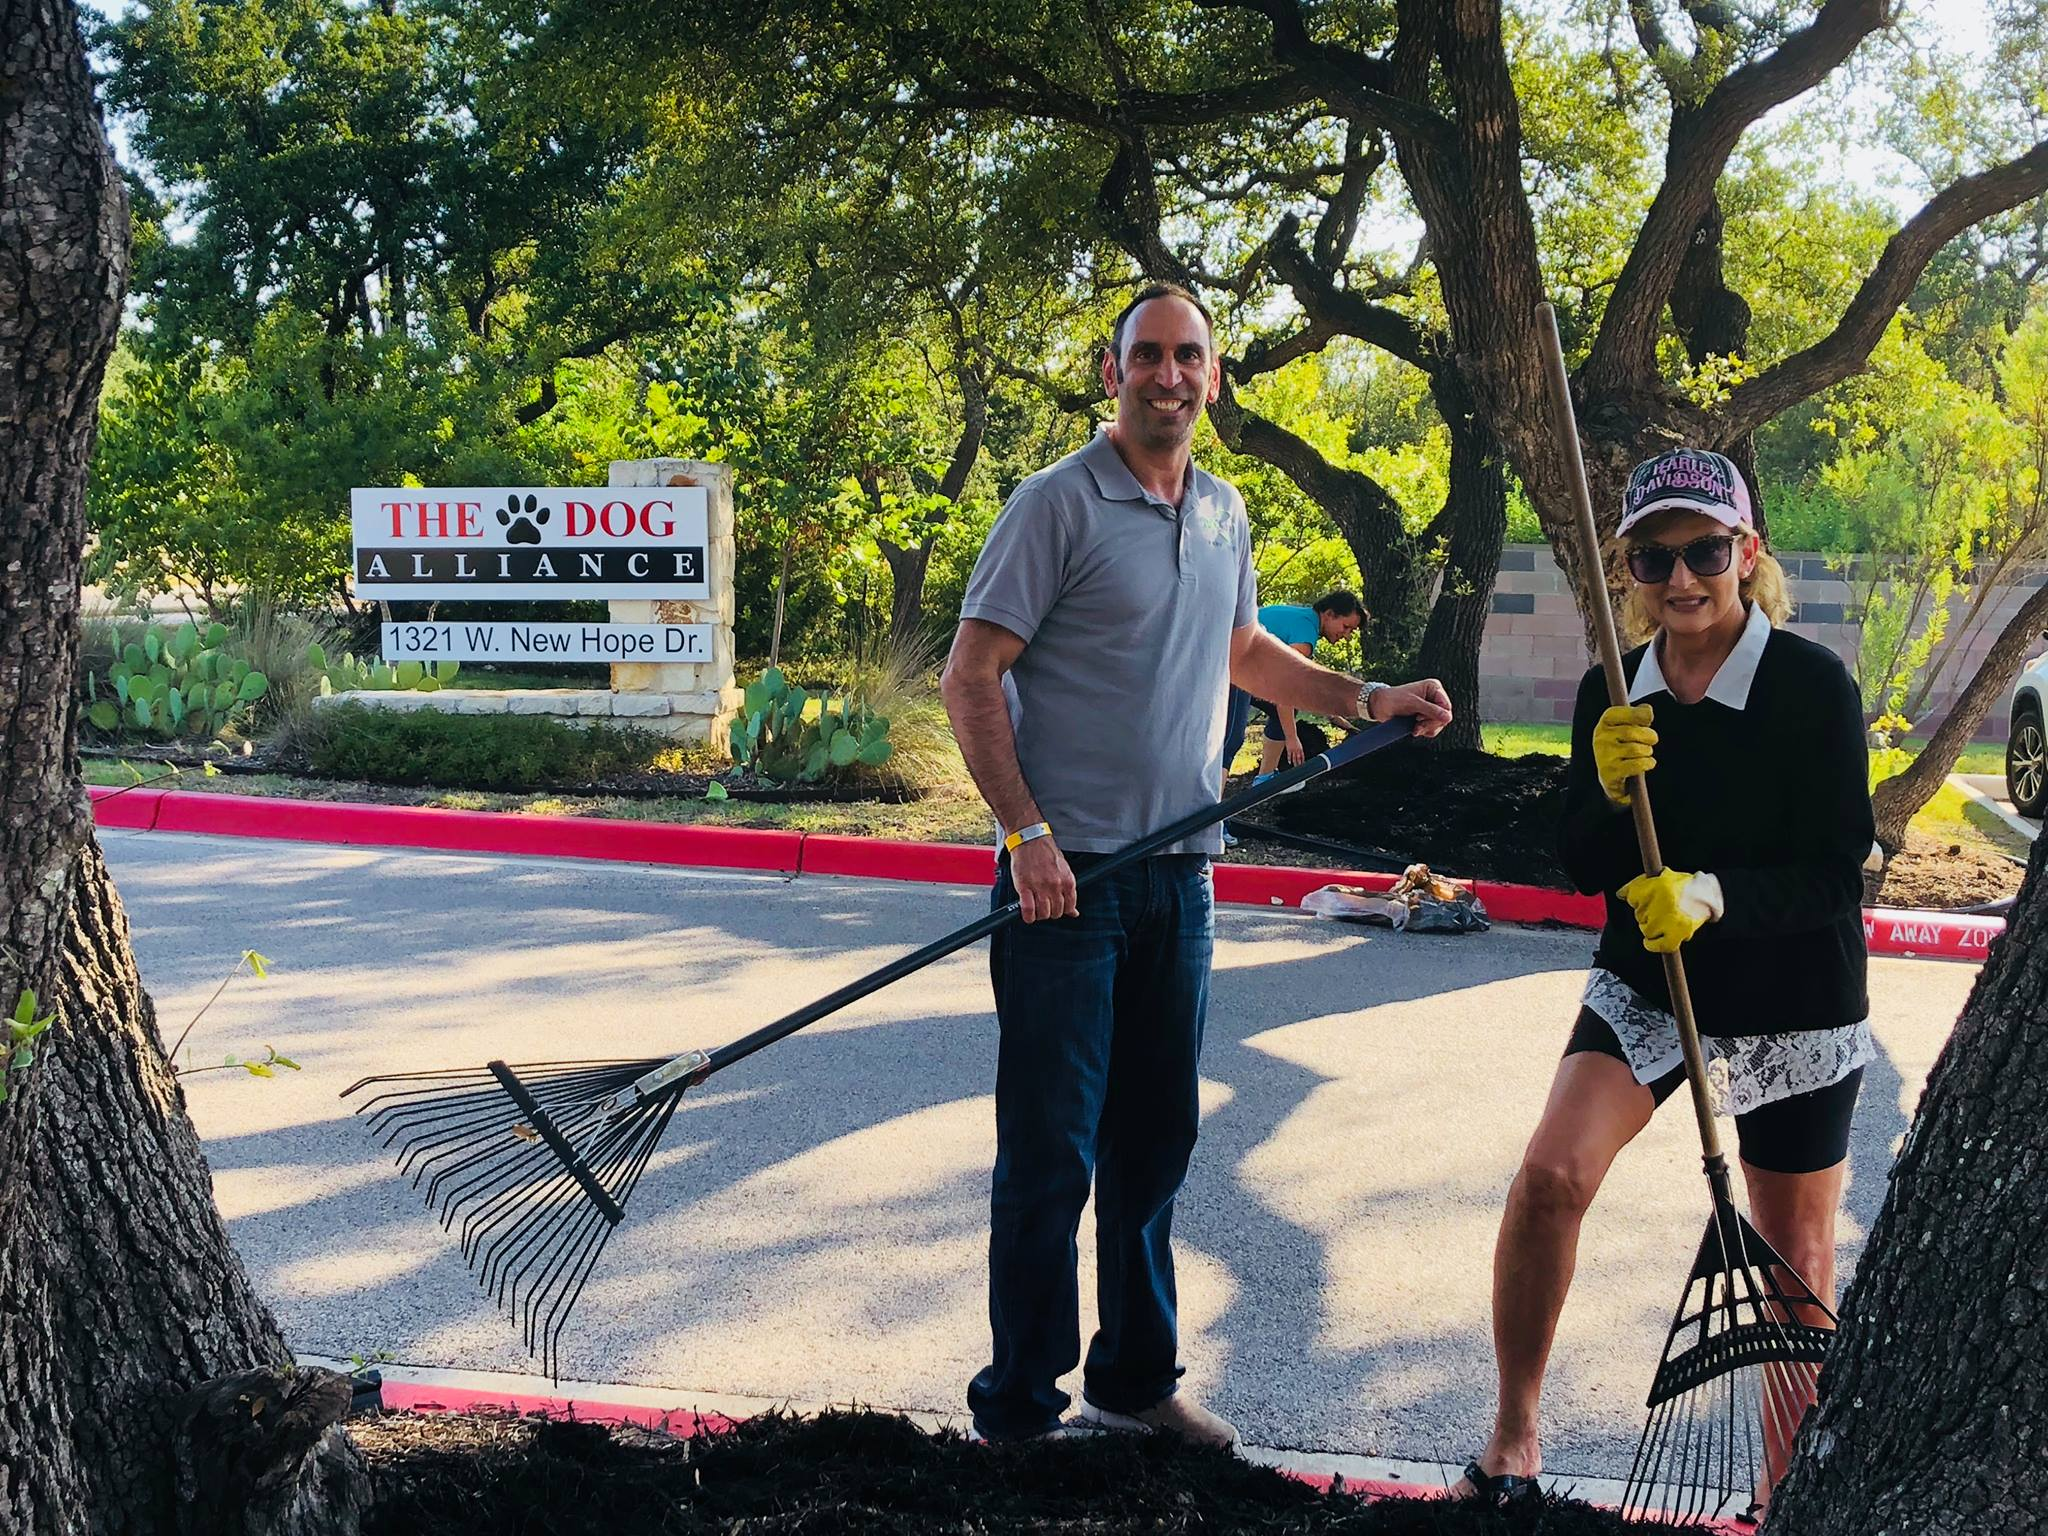 Volunteered to mulch the flower beds to create curb appeal for The Dog Alliance, a local non-profit.